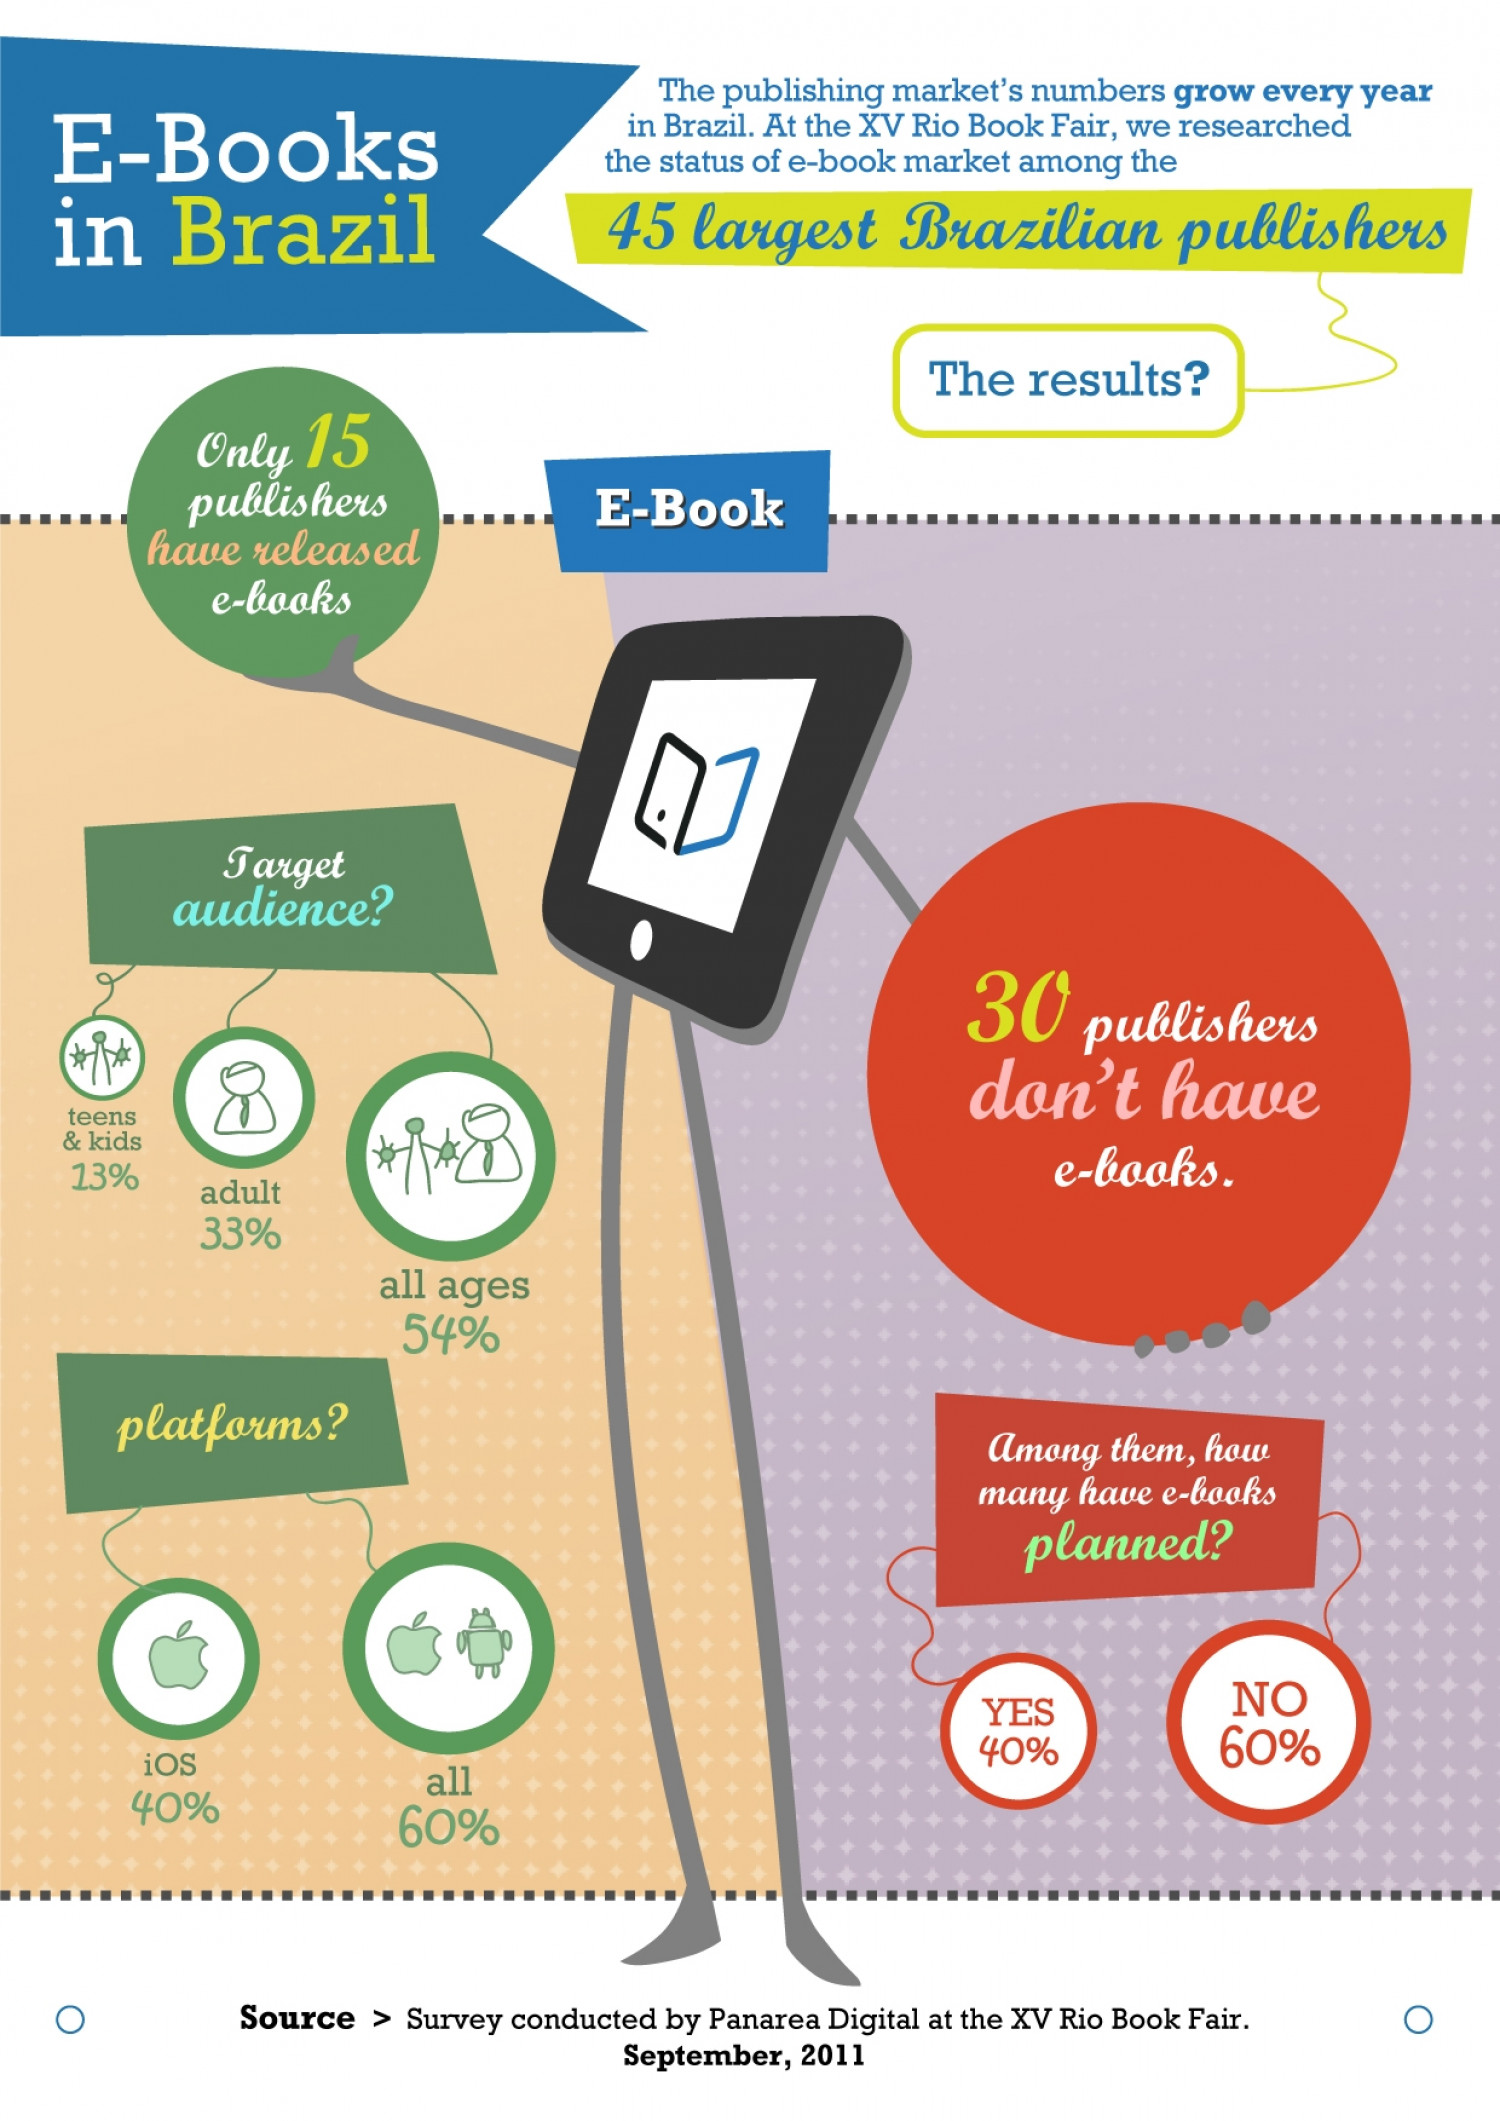 E-books in Brazil Infographic